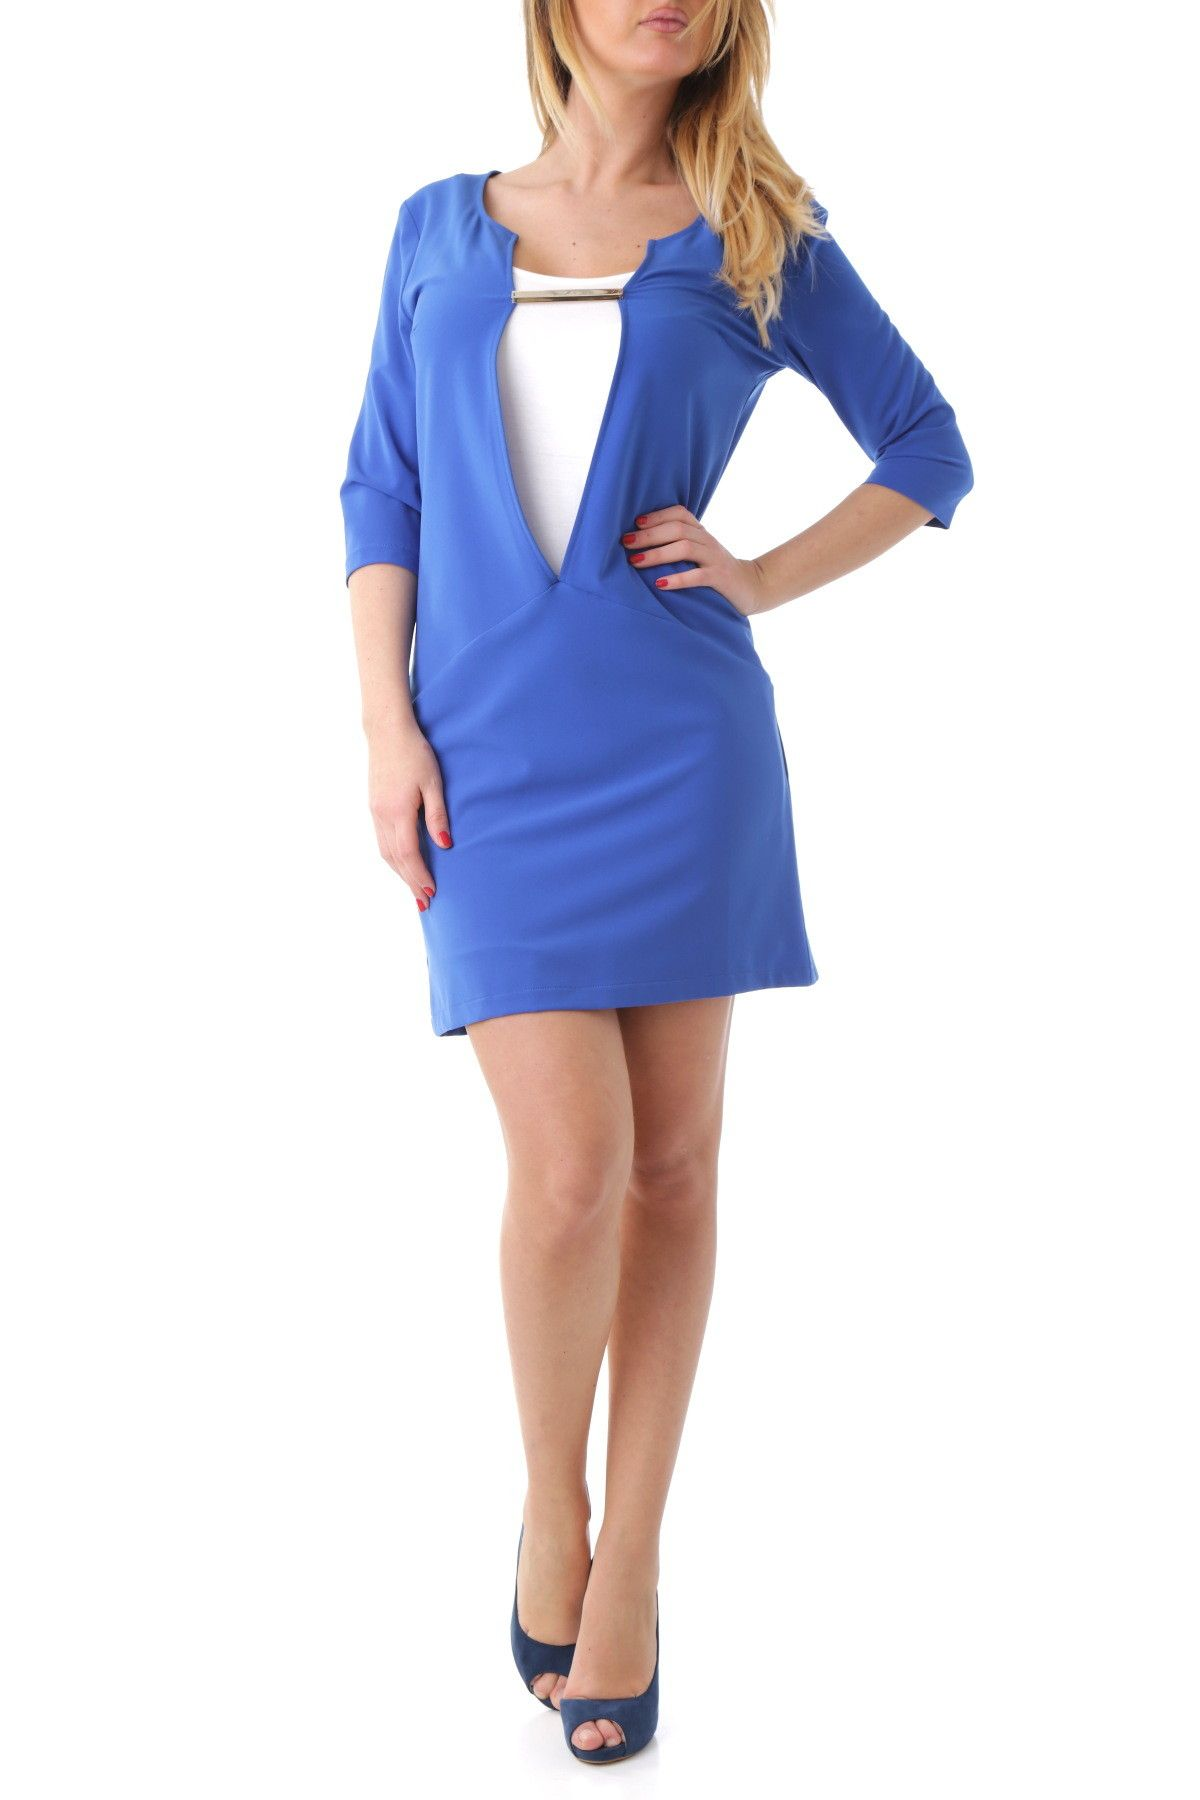 Olivia Hops Women's Dress In Blue